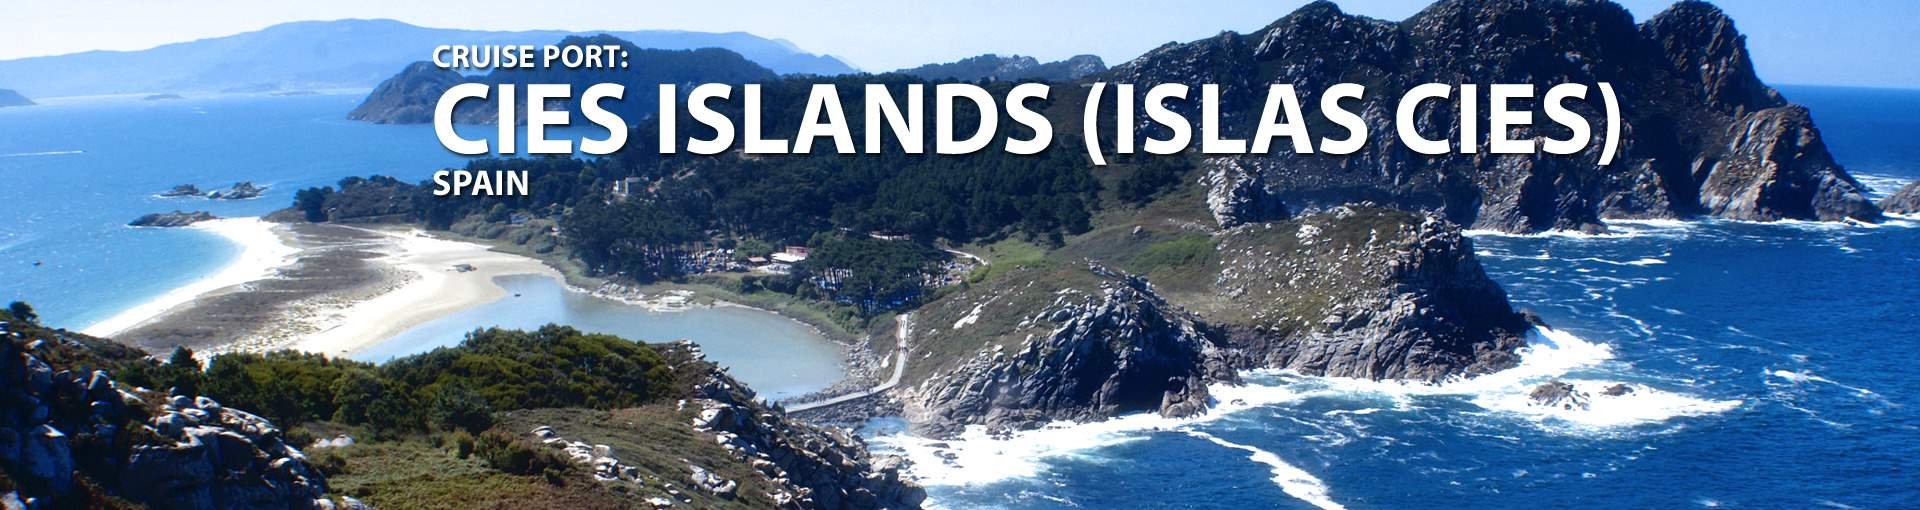 Cruises to Cies Islands (Islas Cies), Spain